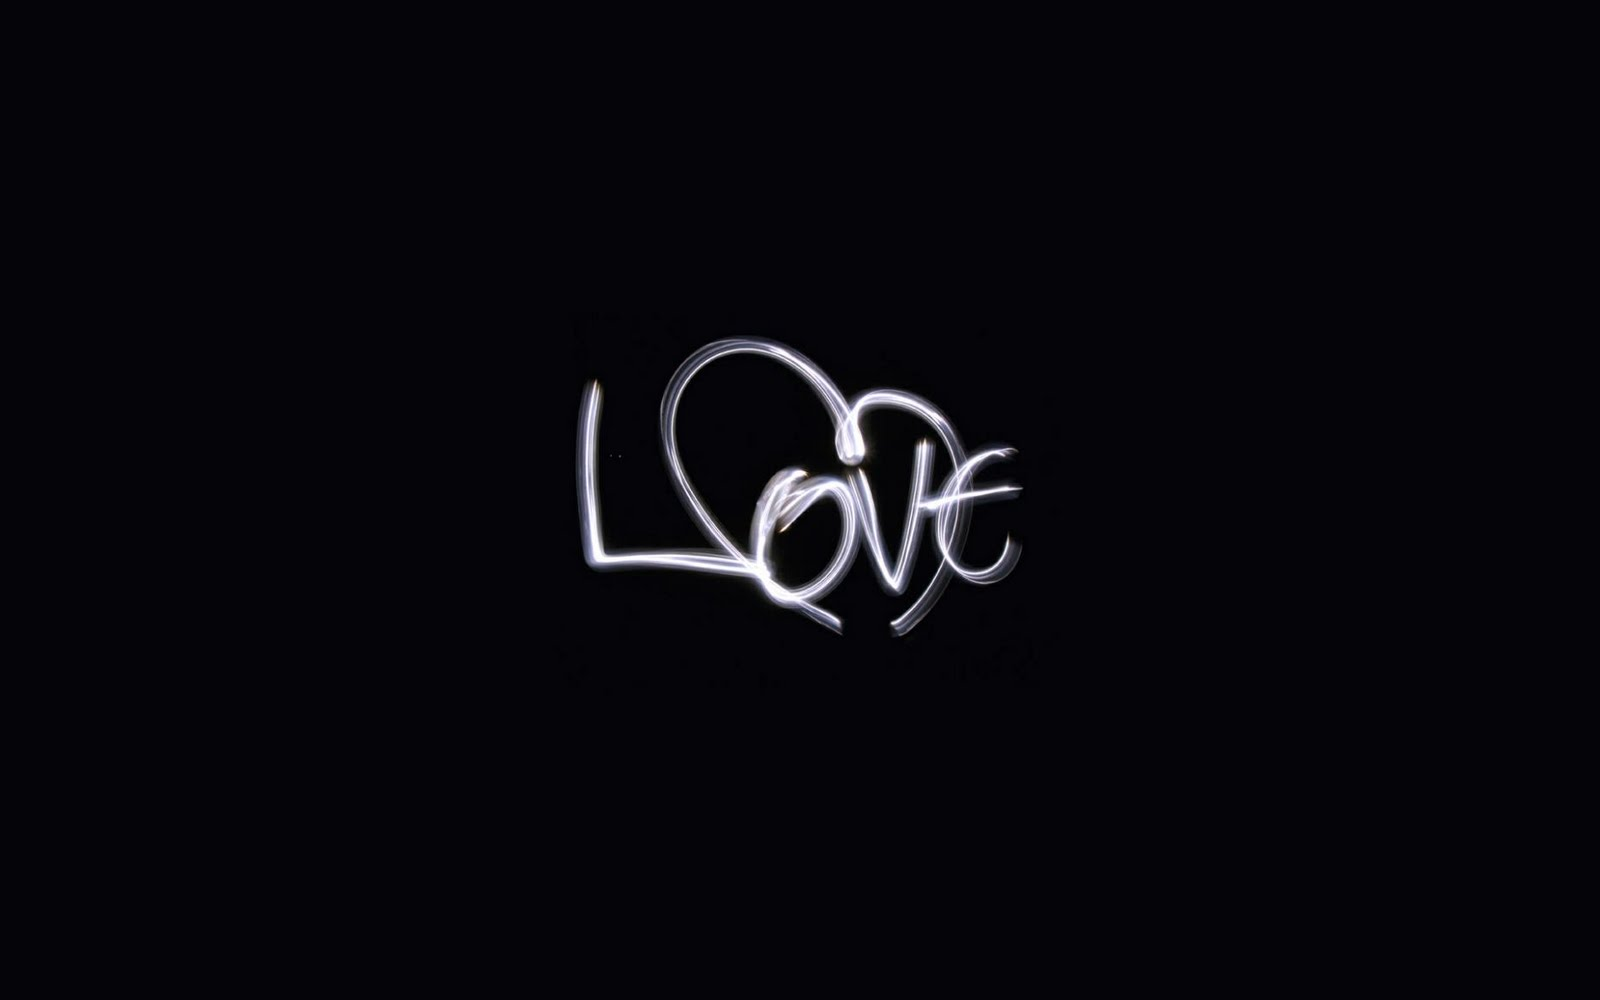 Love Wallpapers Hd For : TOP HD WALLPAPERS: LOVE HD WALLPAPER